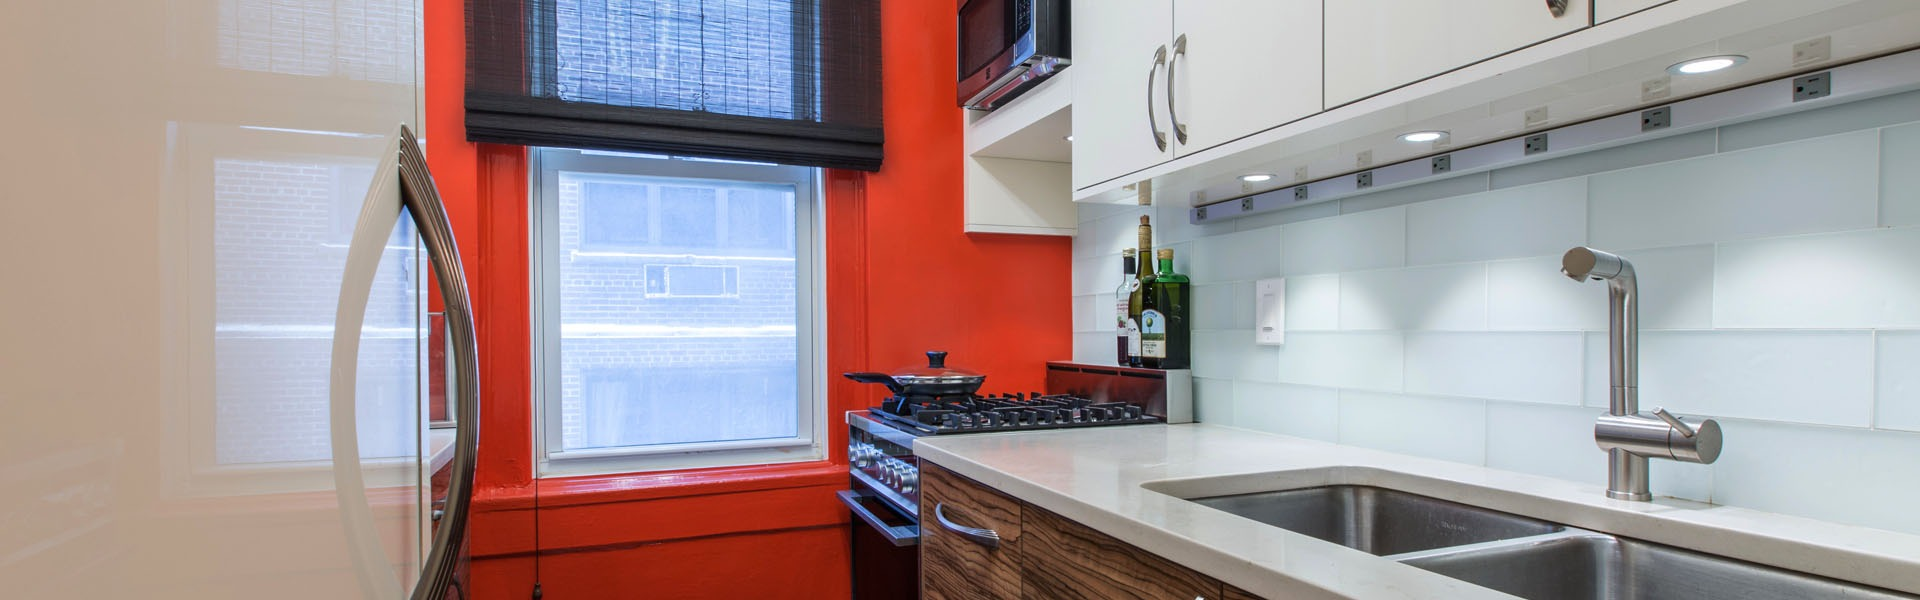 About Us Berceli Interior Remodeling New York